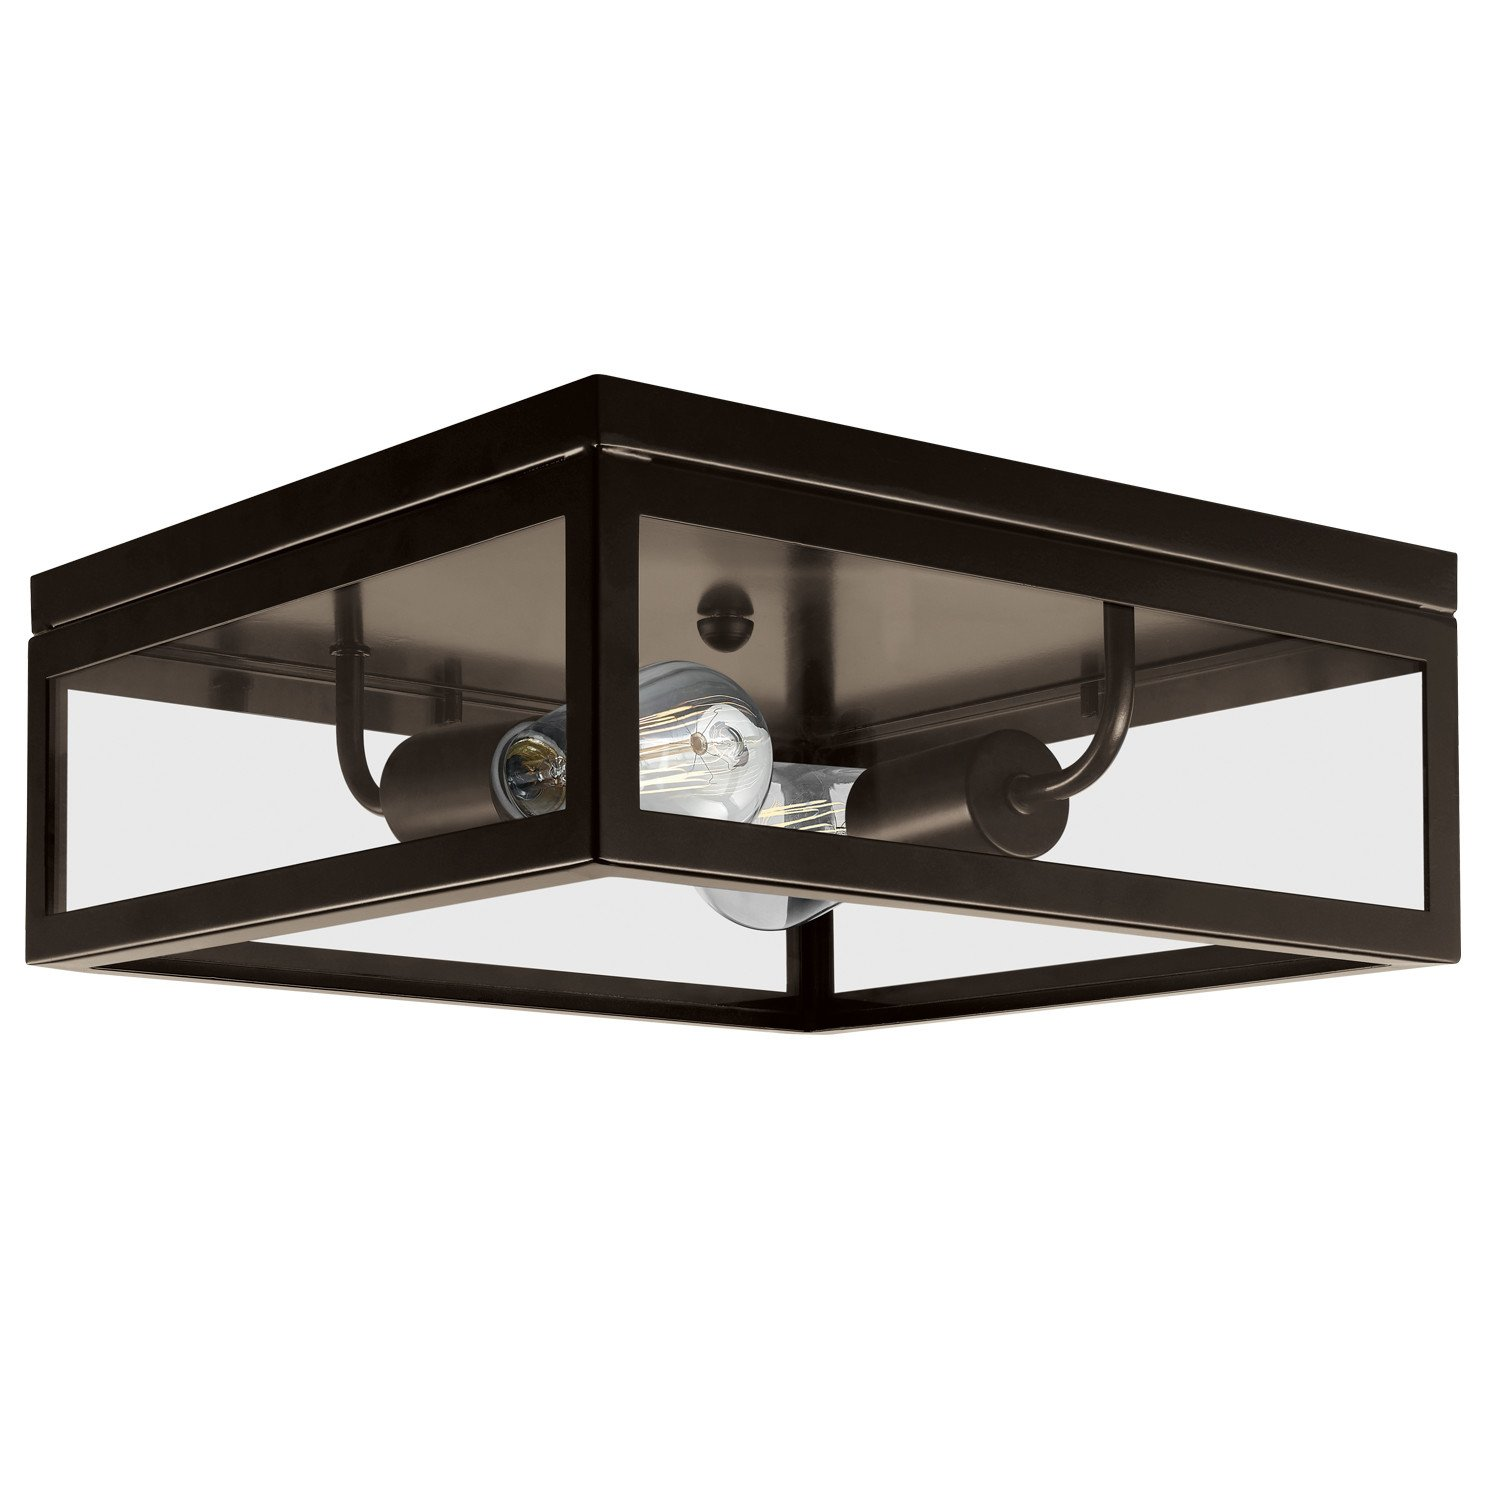 Globe Electric 65748 Memphis 2-Light Flush Mount Ceiling Light